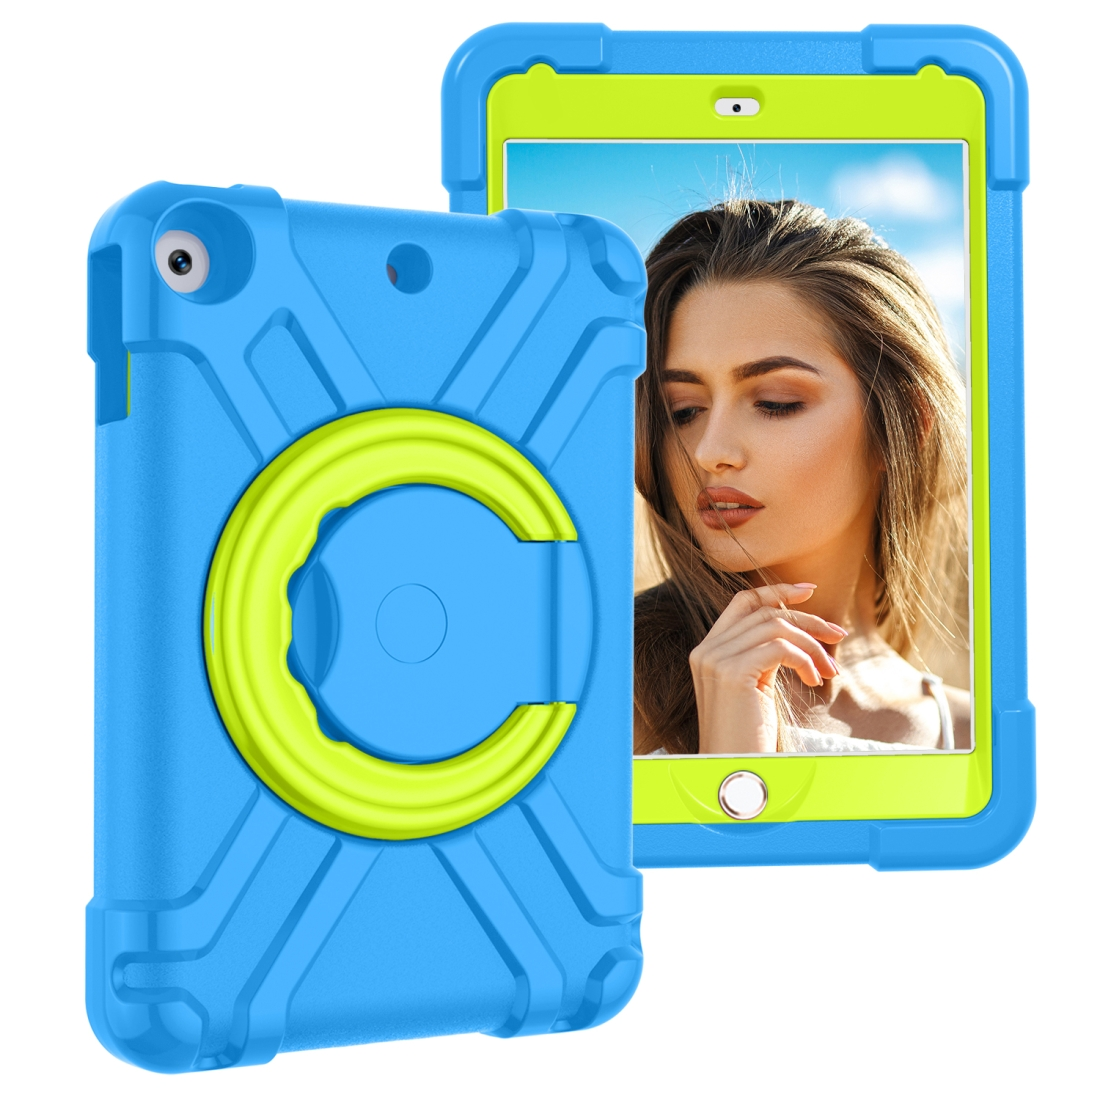 iPad 7th Generation Case (10.2 Inch) Featuring A Durable Case With 360 Rotation (Green/Blue)